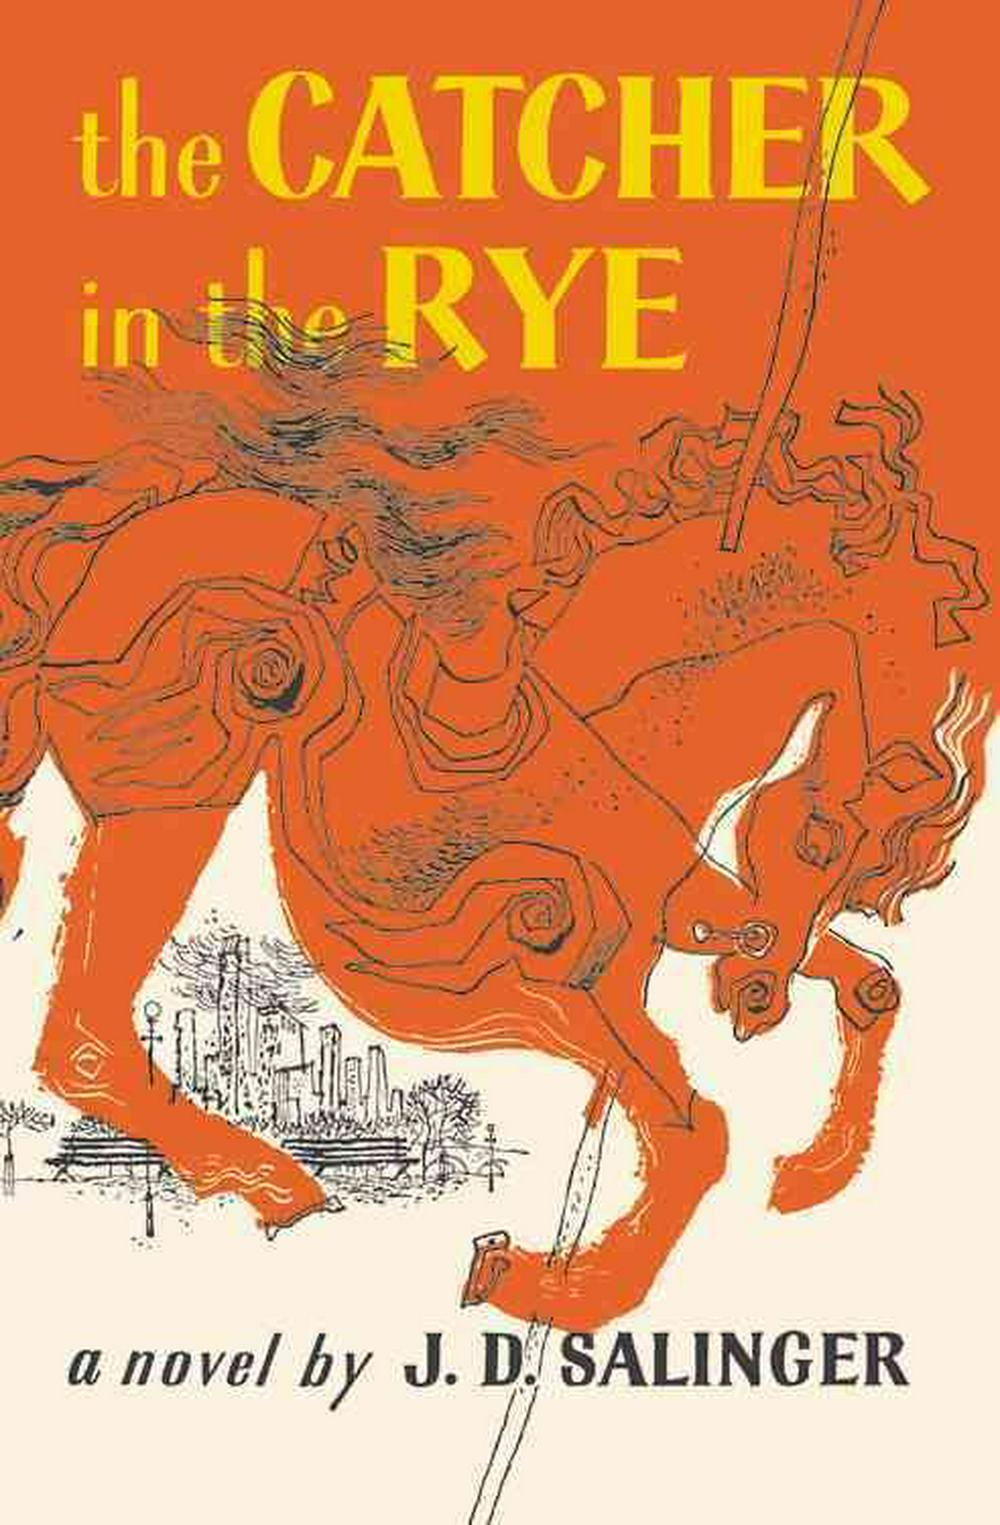 an analysis of the catcher in the rye novel by j d salinger and holdens view The catcher in the rye has 2,255,121 he ''remained at the scene reading j d salinger's novel the catcher in the rye until the quotes from the catcher in.